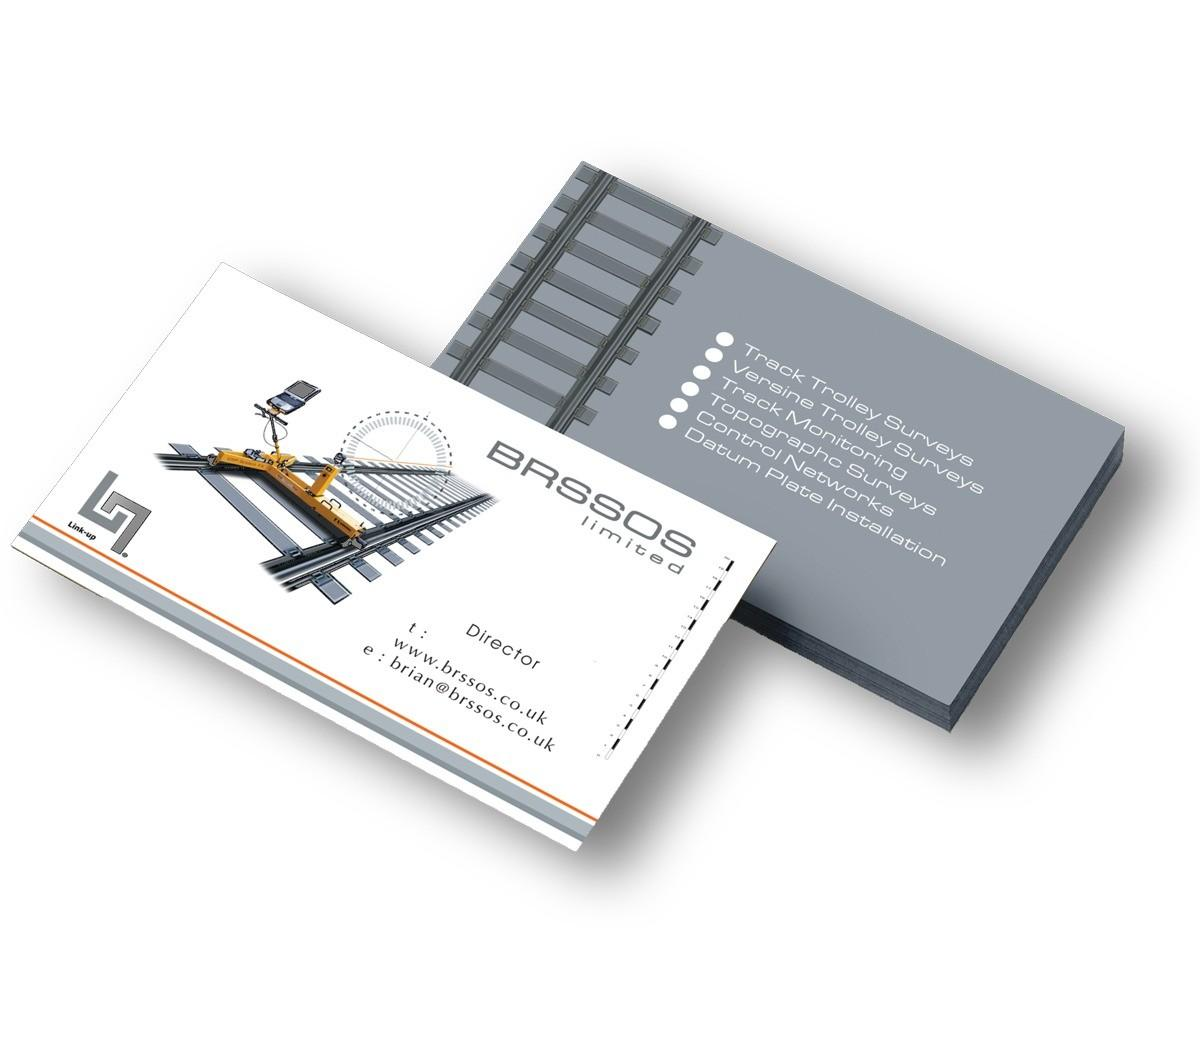 An illustration showing the front and back design of the BROSSOS business cards.